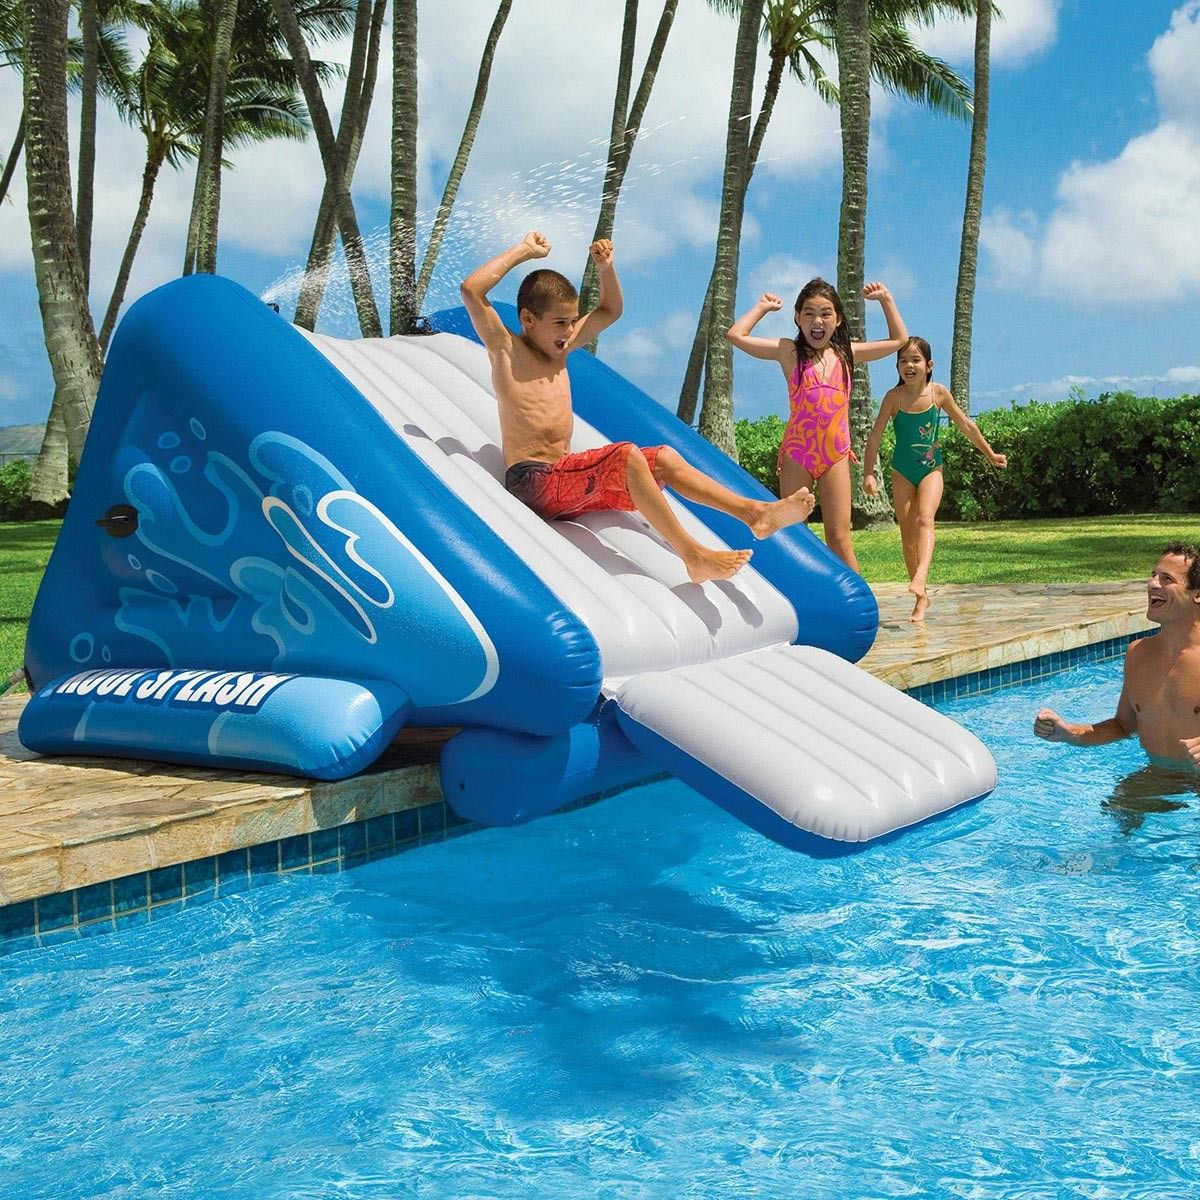 Inflatable Pool Slide Intex splish and splash on this awesome intex water slide! this